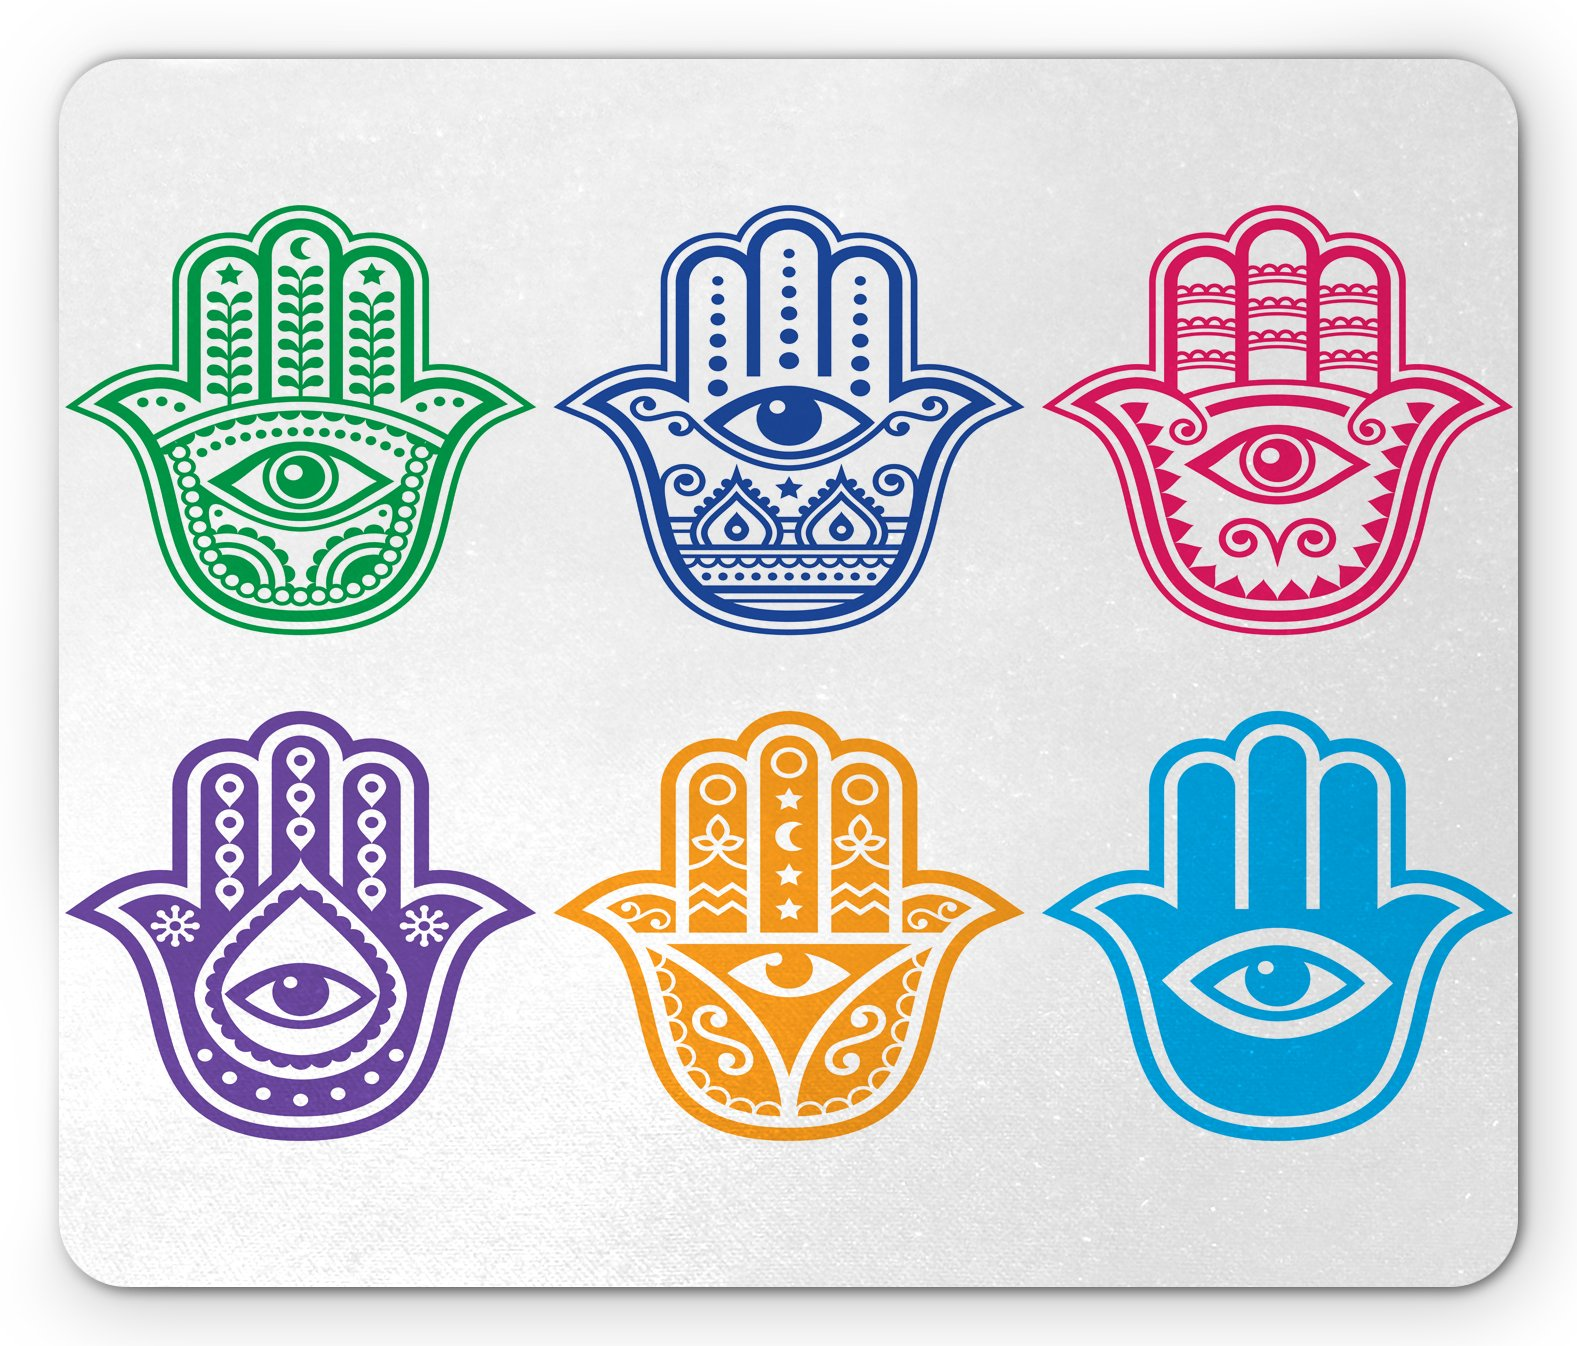 Lunarable Hamsa Mouse Pad, Evil Eye Theme Hamsa Hand of Fatima Pattern African Ethnic Religion Power Sign Print, Standard Size Rectangle Non-Slip Rubber Mousepad, Multicolor by Lunarable (Image #1)